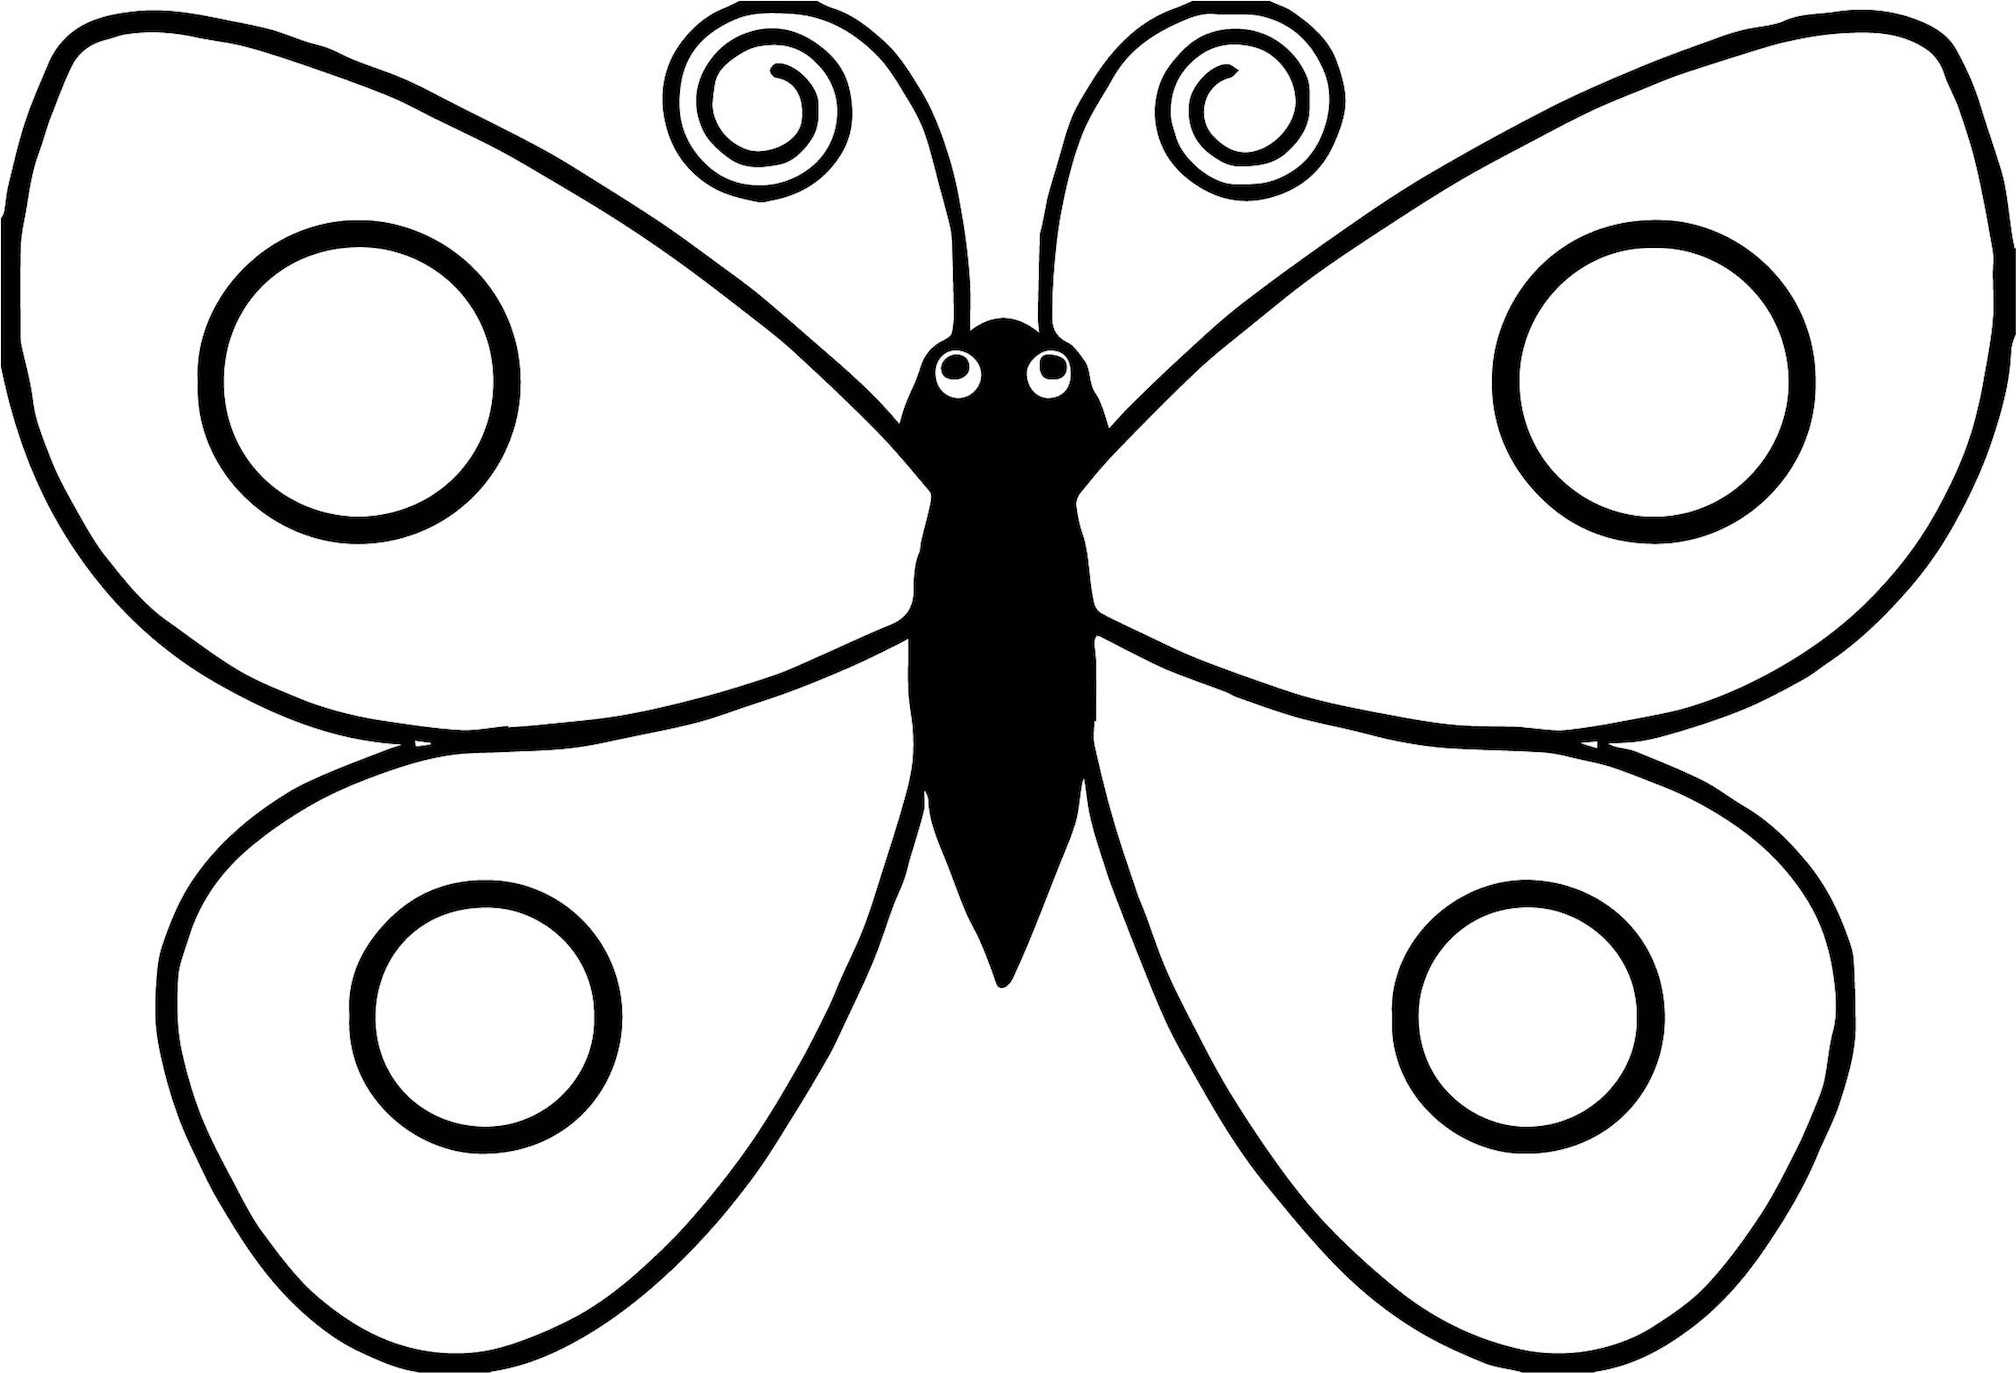 coloring pages for kids butterfly butterfly coloring pages nice for kids printable free butterfly for kids coloring pages